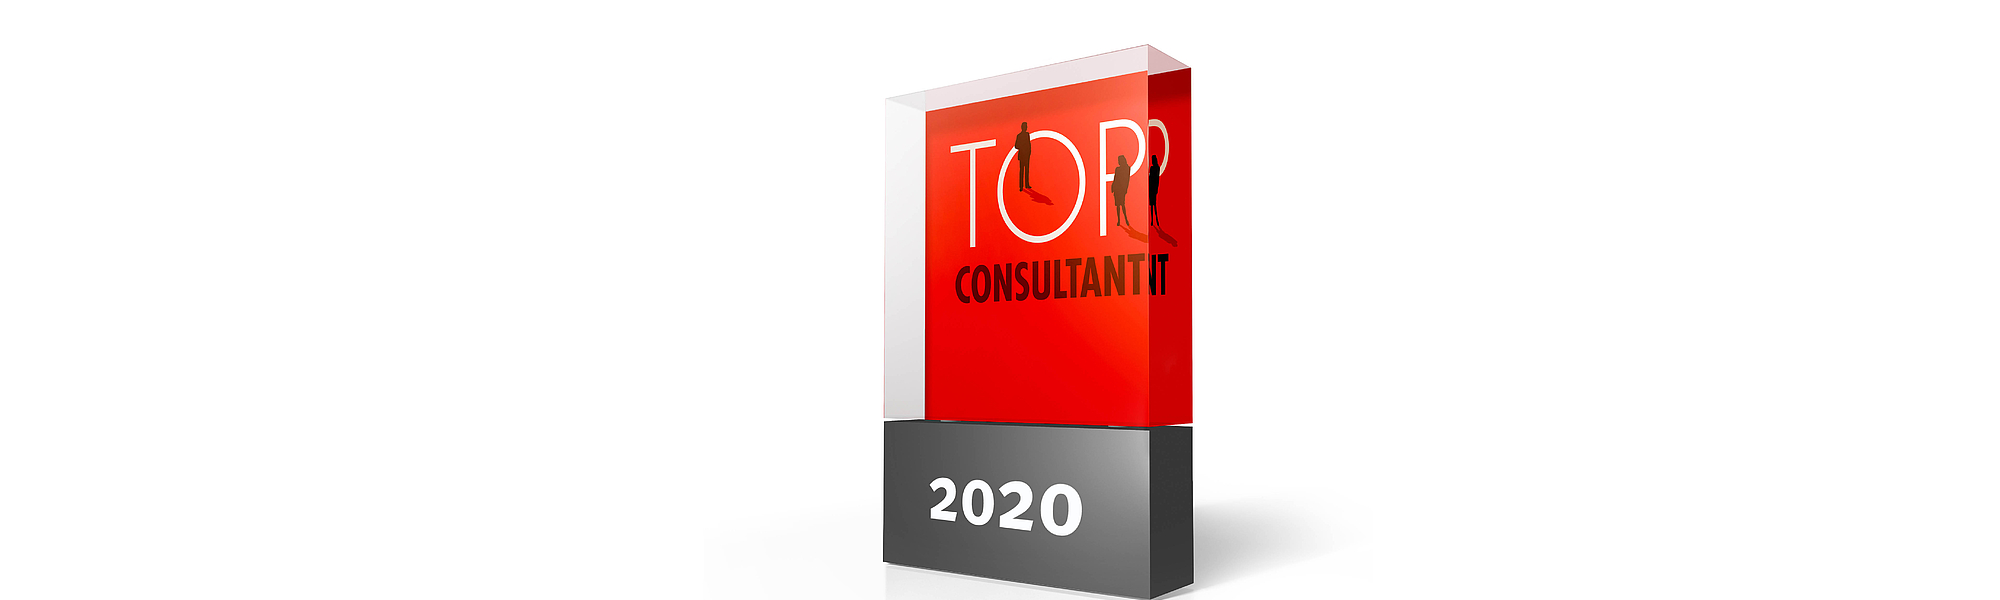 Welke Consulting Gruppe